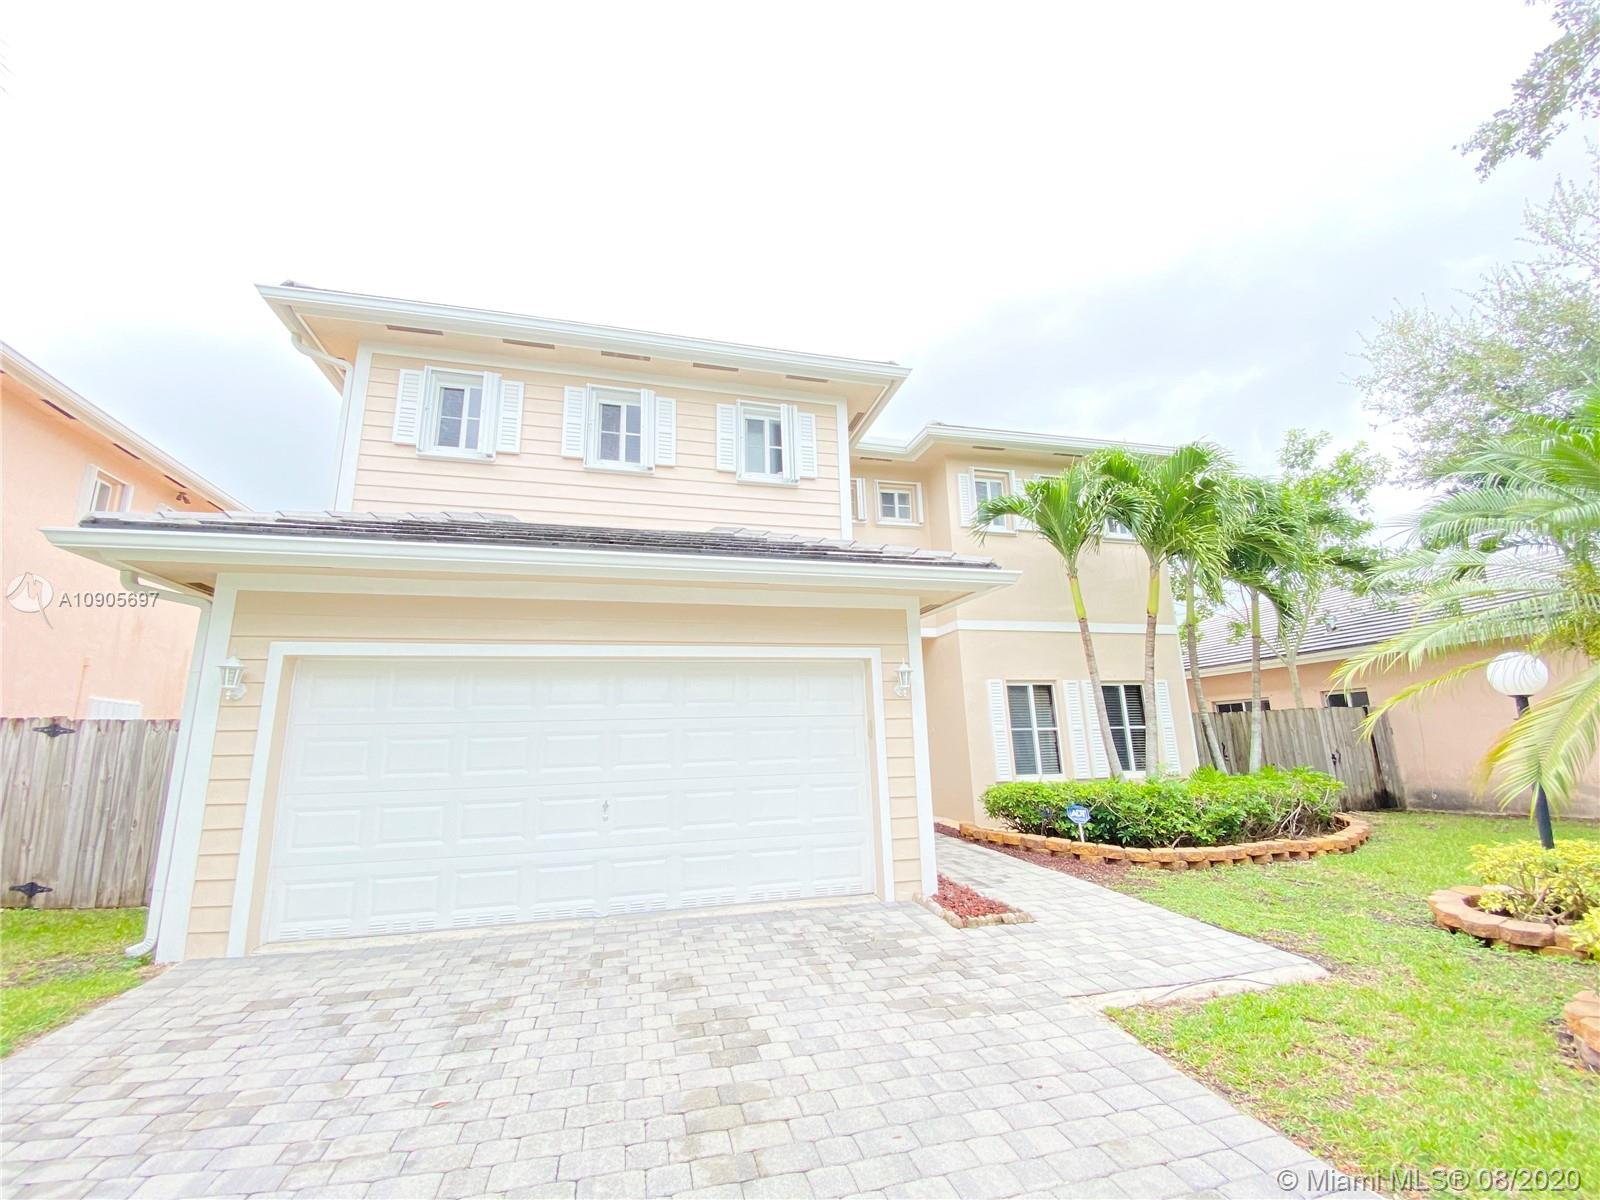 360 NE 29th Ter Property Photo - Homestead, FL real estate listing